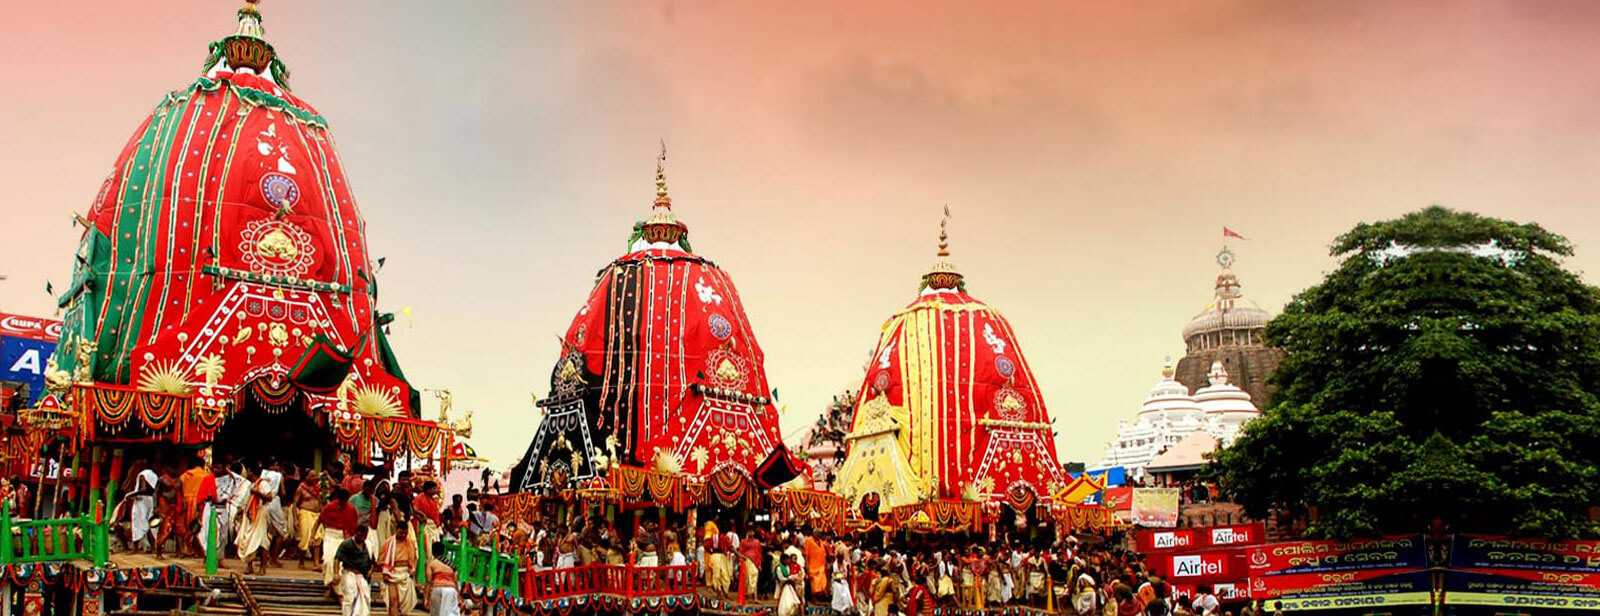 Jagannath Puri Tour Package